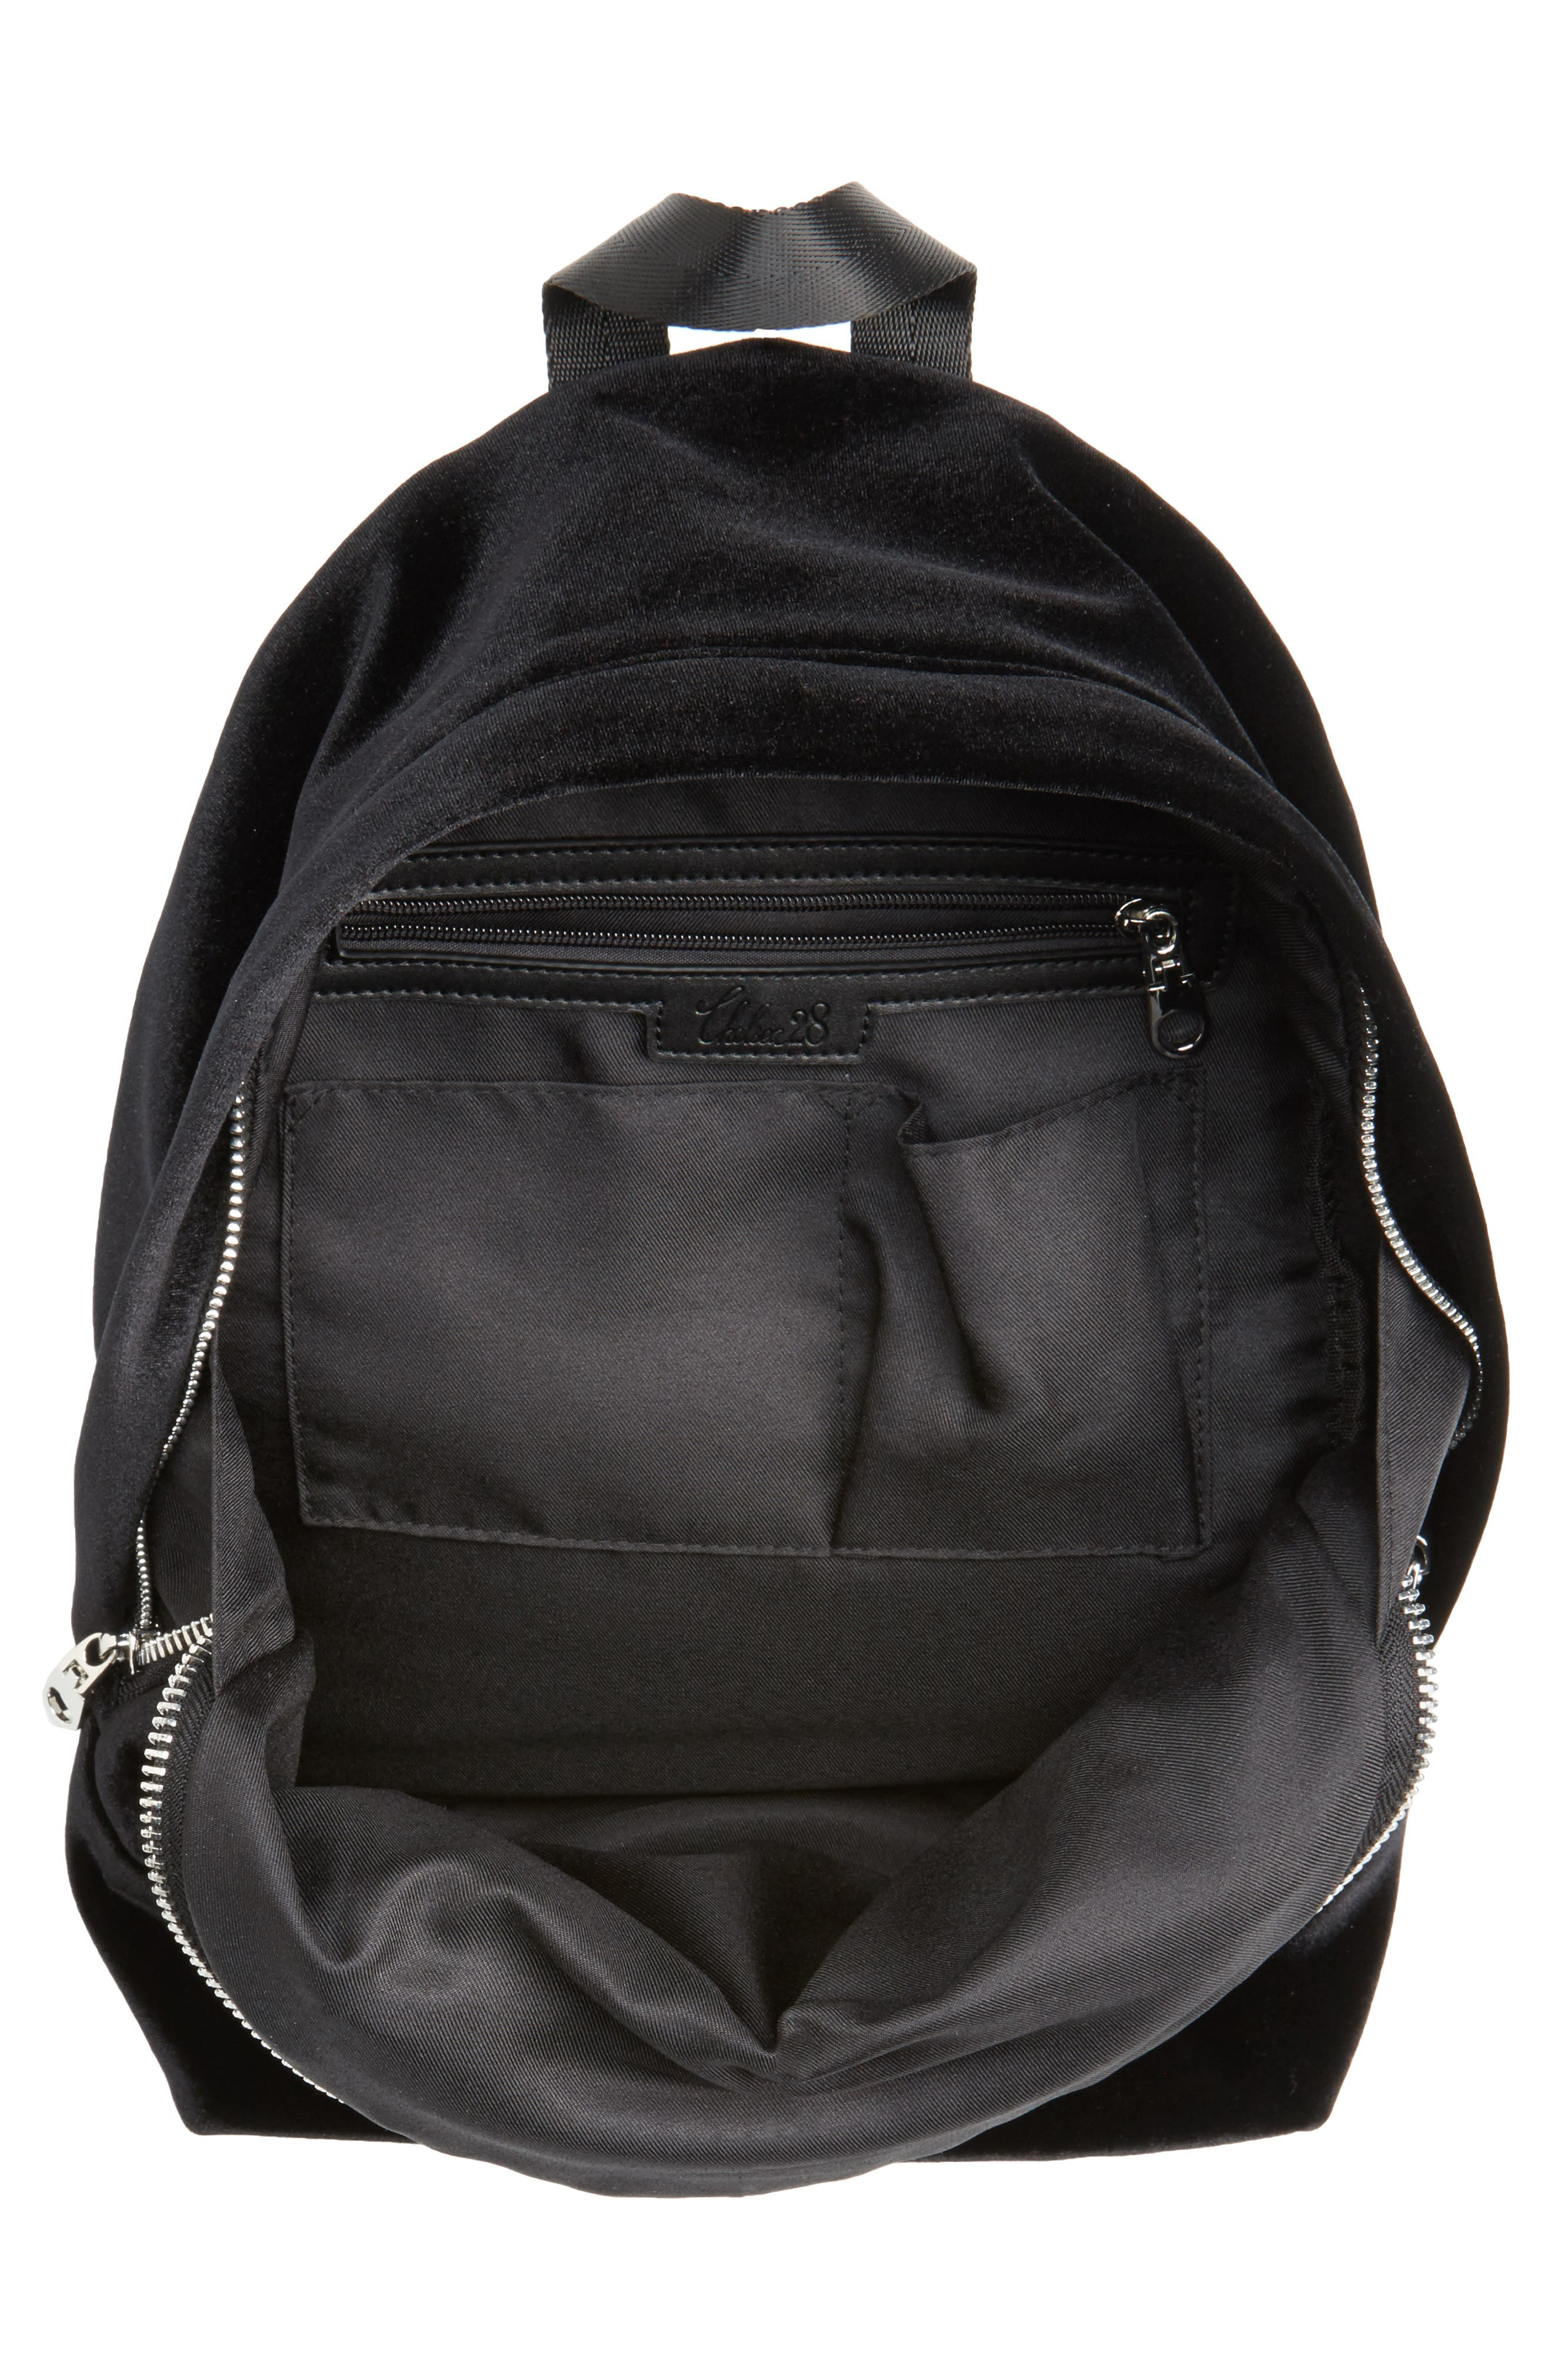 Velvet Backpack,                             Alternate thumbnail 4, color,                             Black